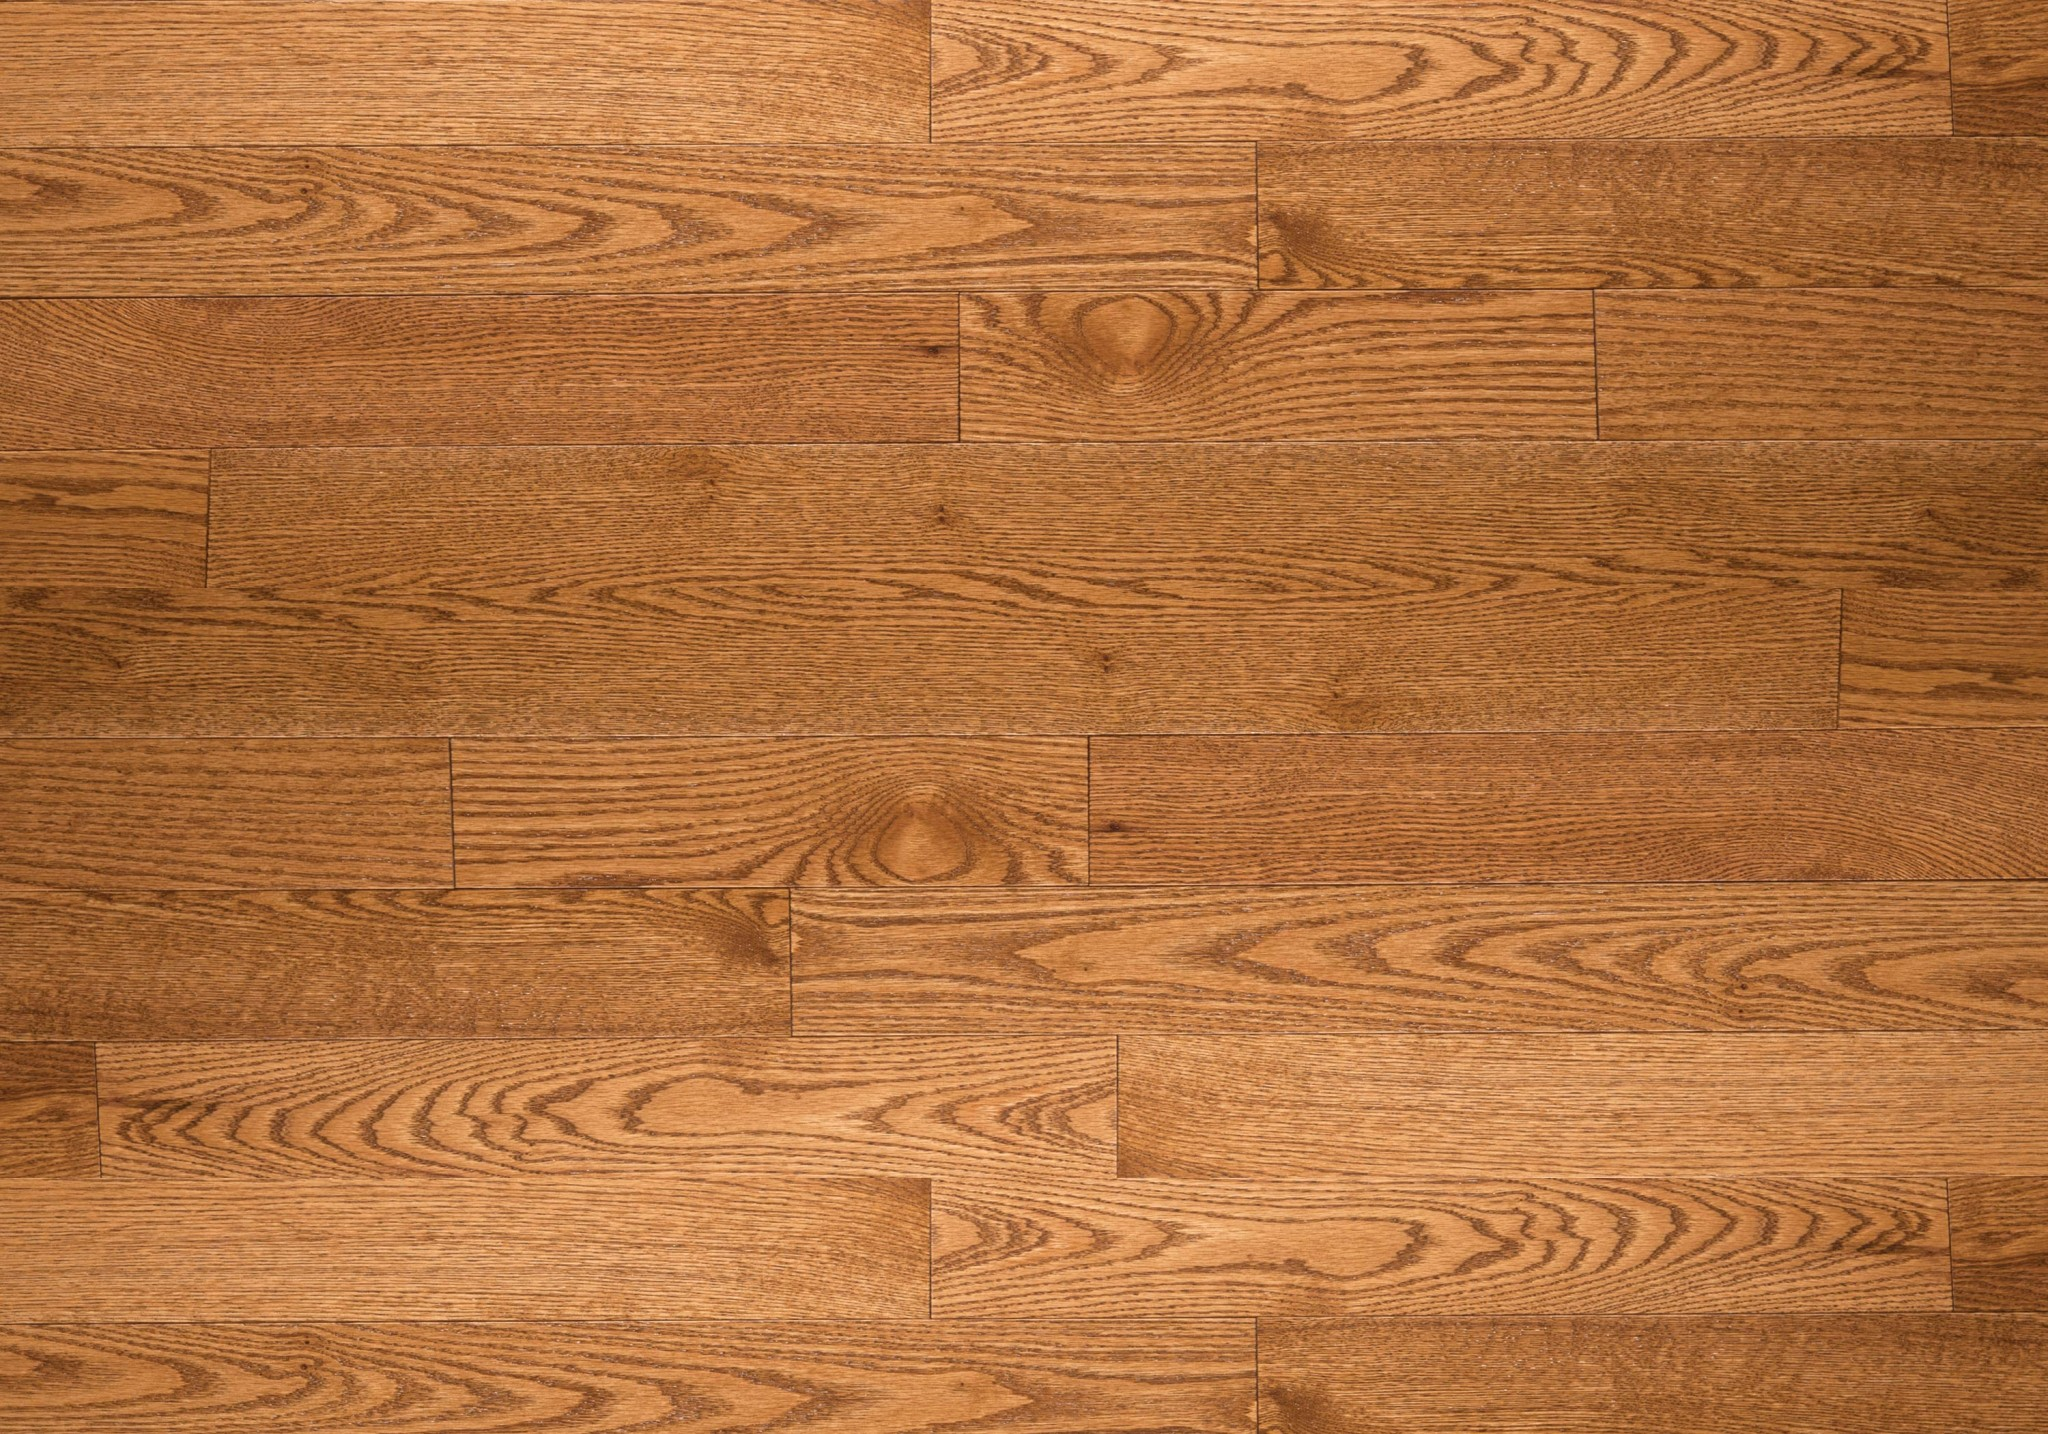 Sahara ambiance red oak exclusive lauzon hardwood for Red oak flooring